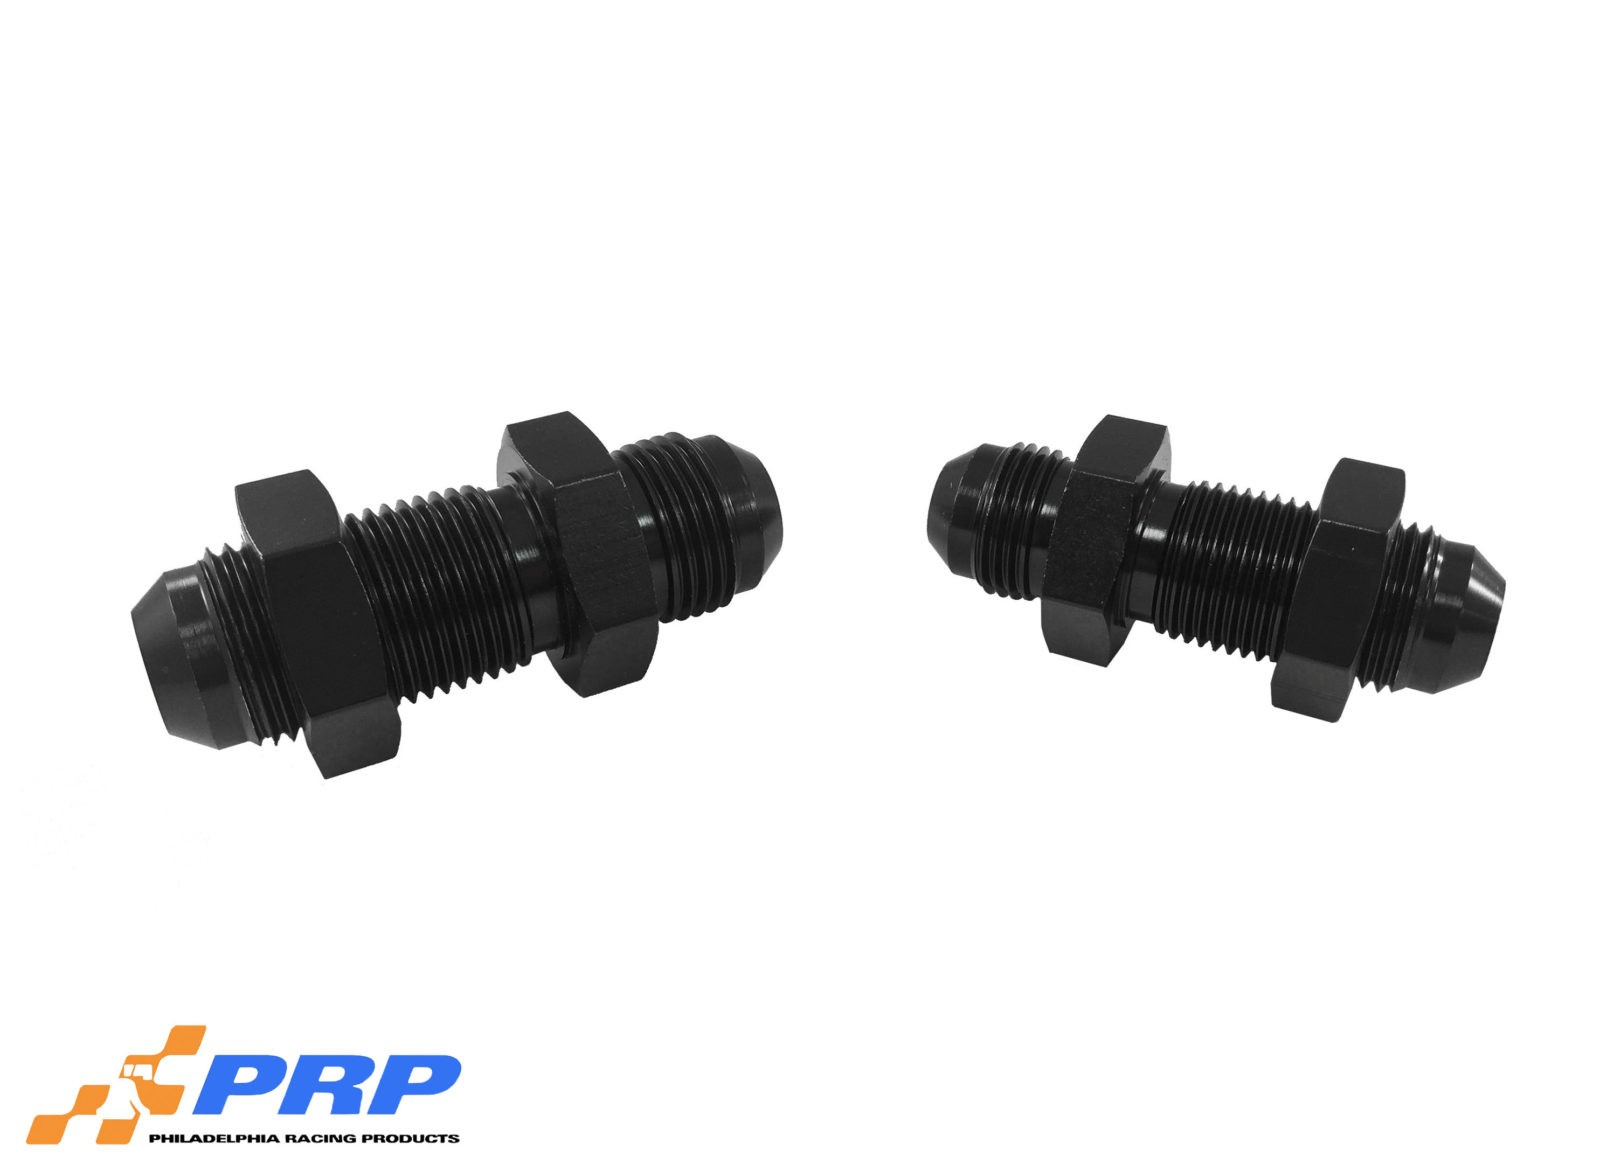 Black Straight Bulkhead Flare made by PRP Racing Products